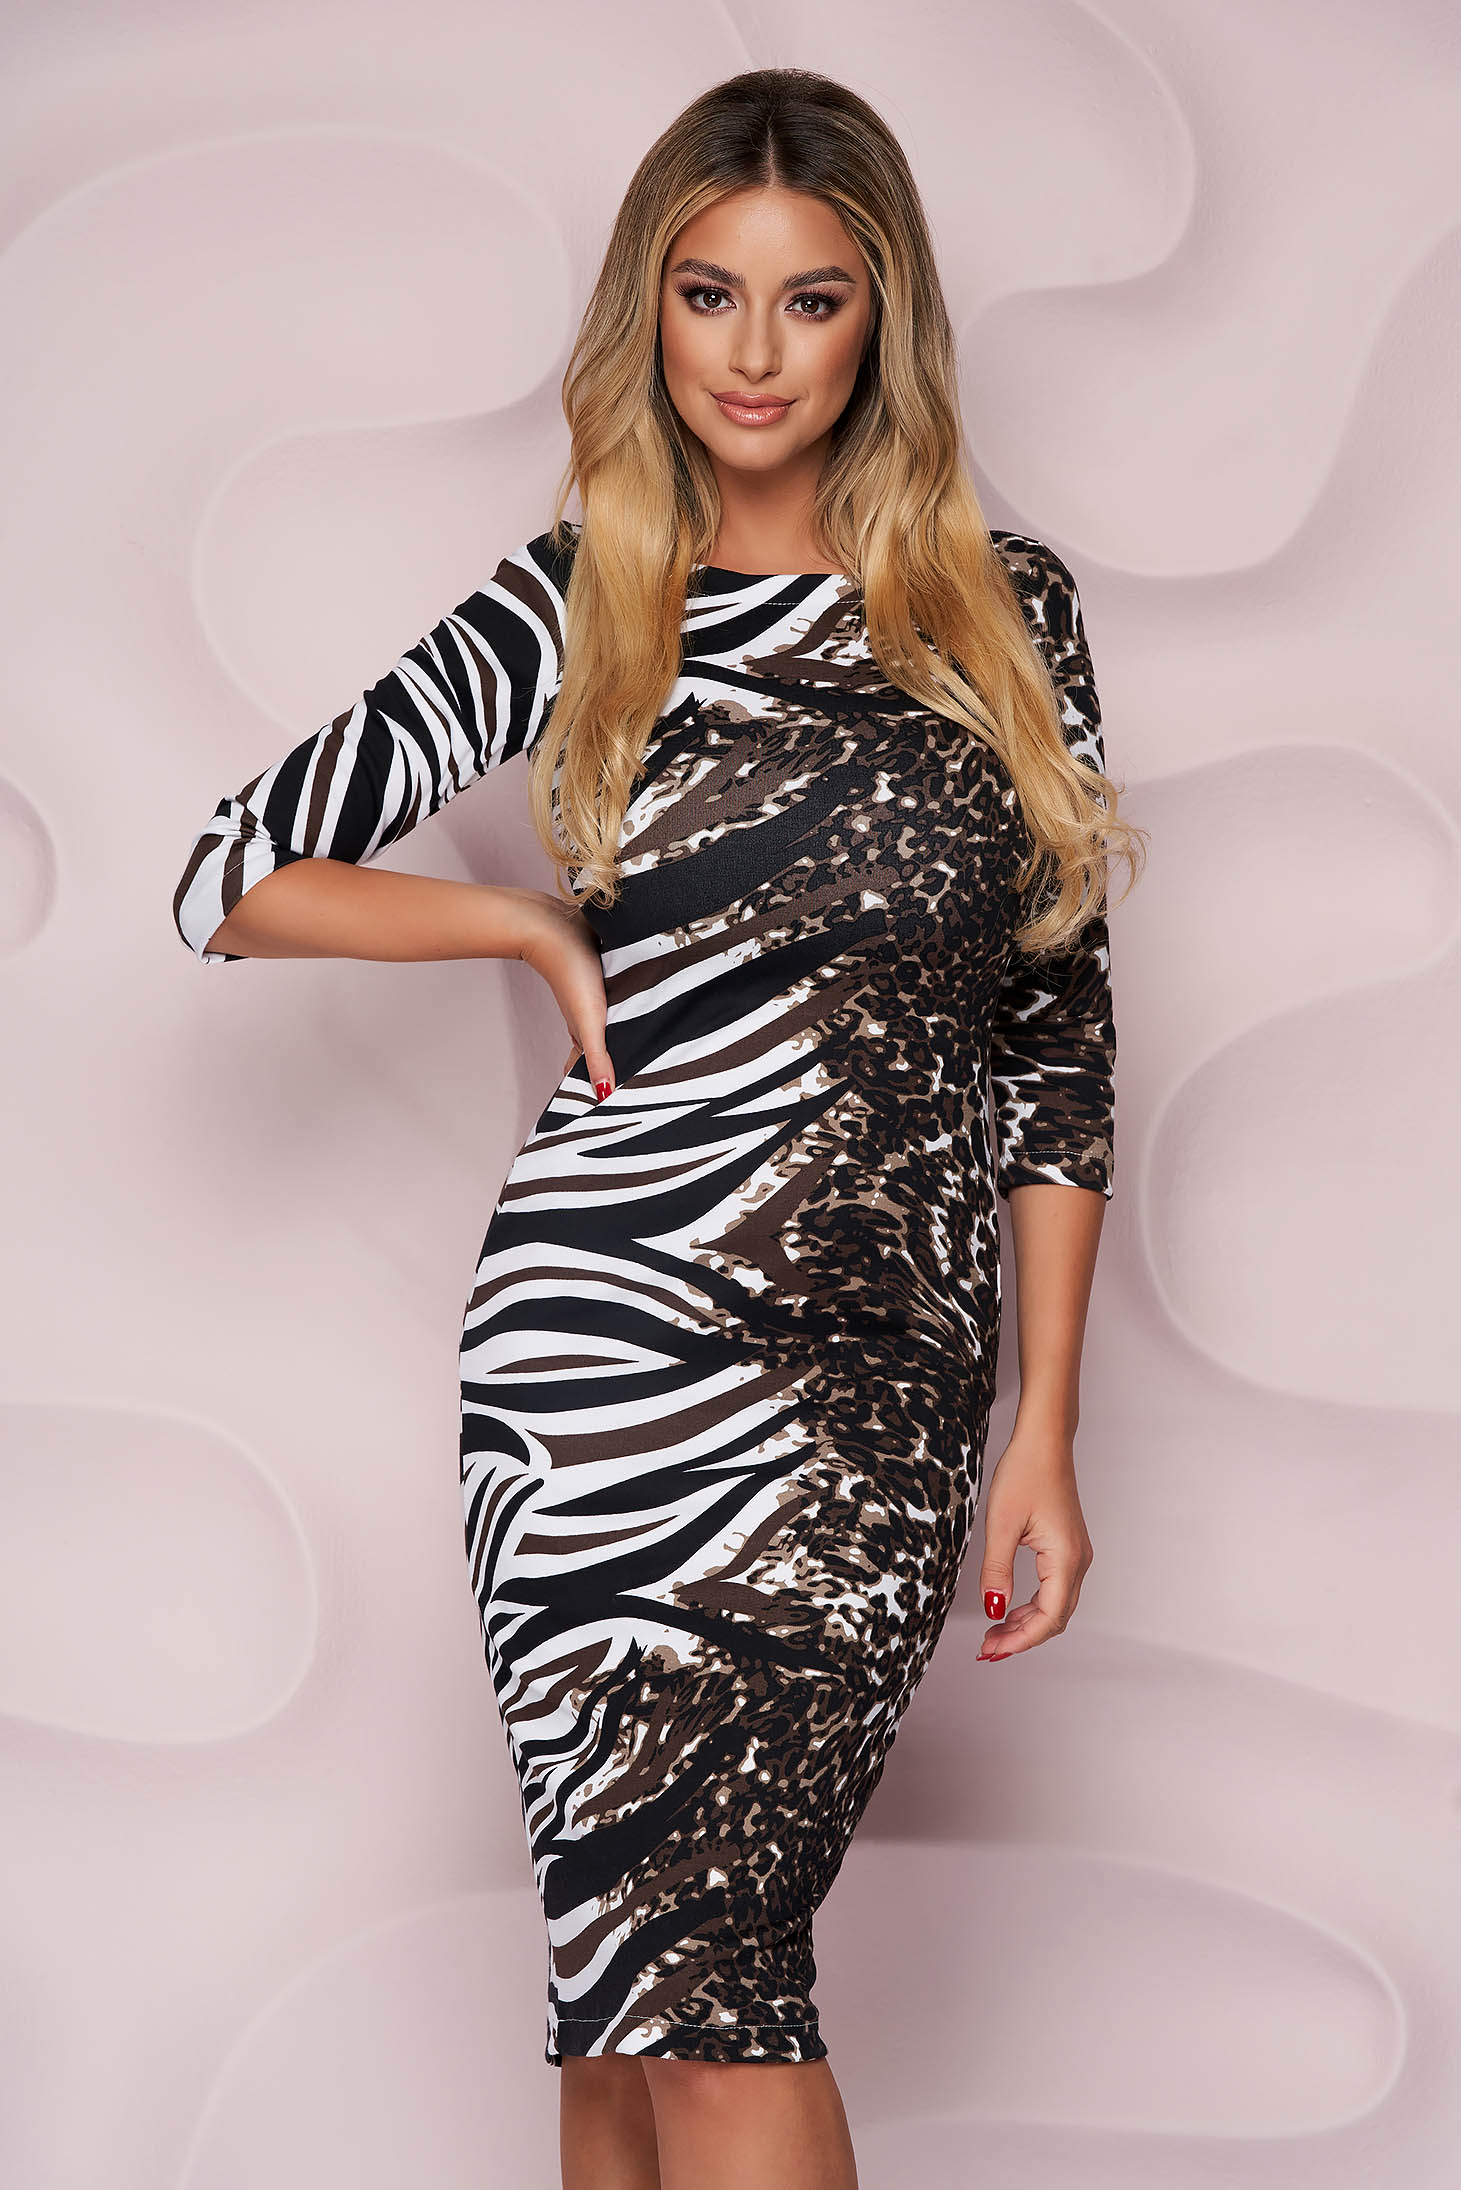 StarShinerS dress office midi pencil from elastic fabric with 3/4 sleeves light material